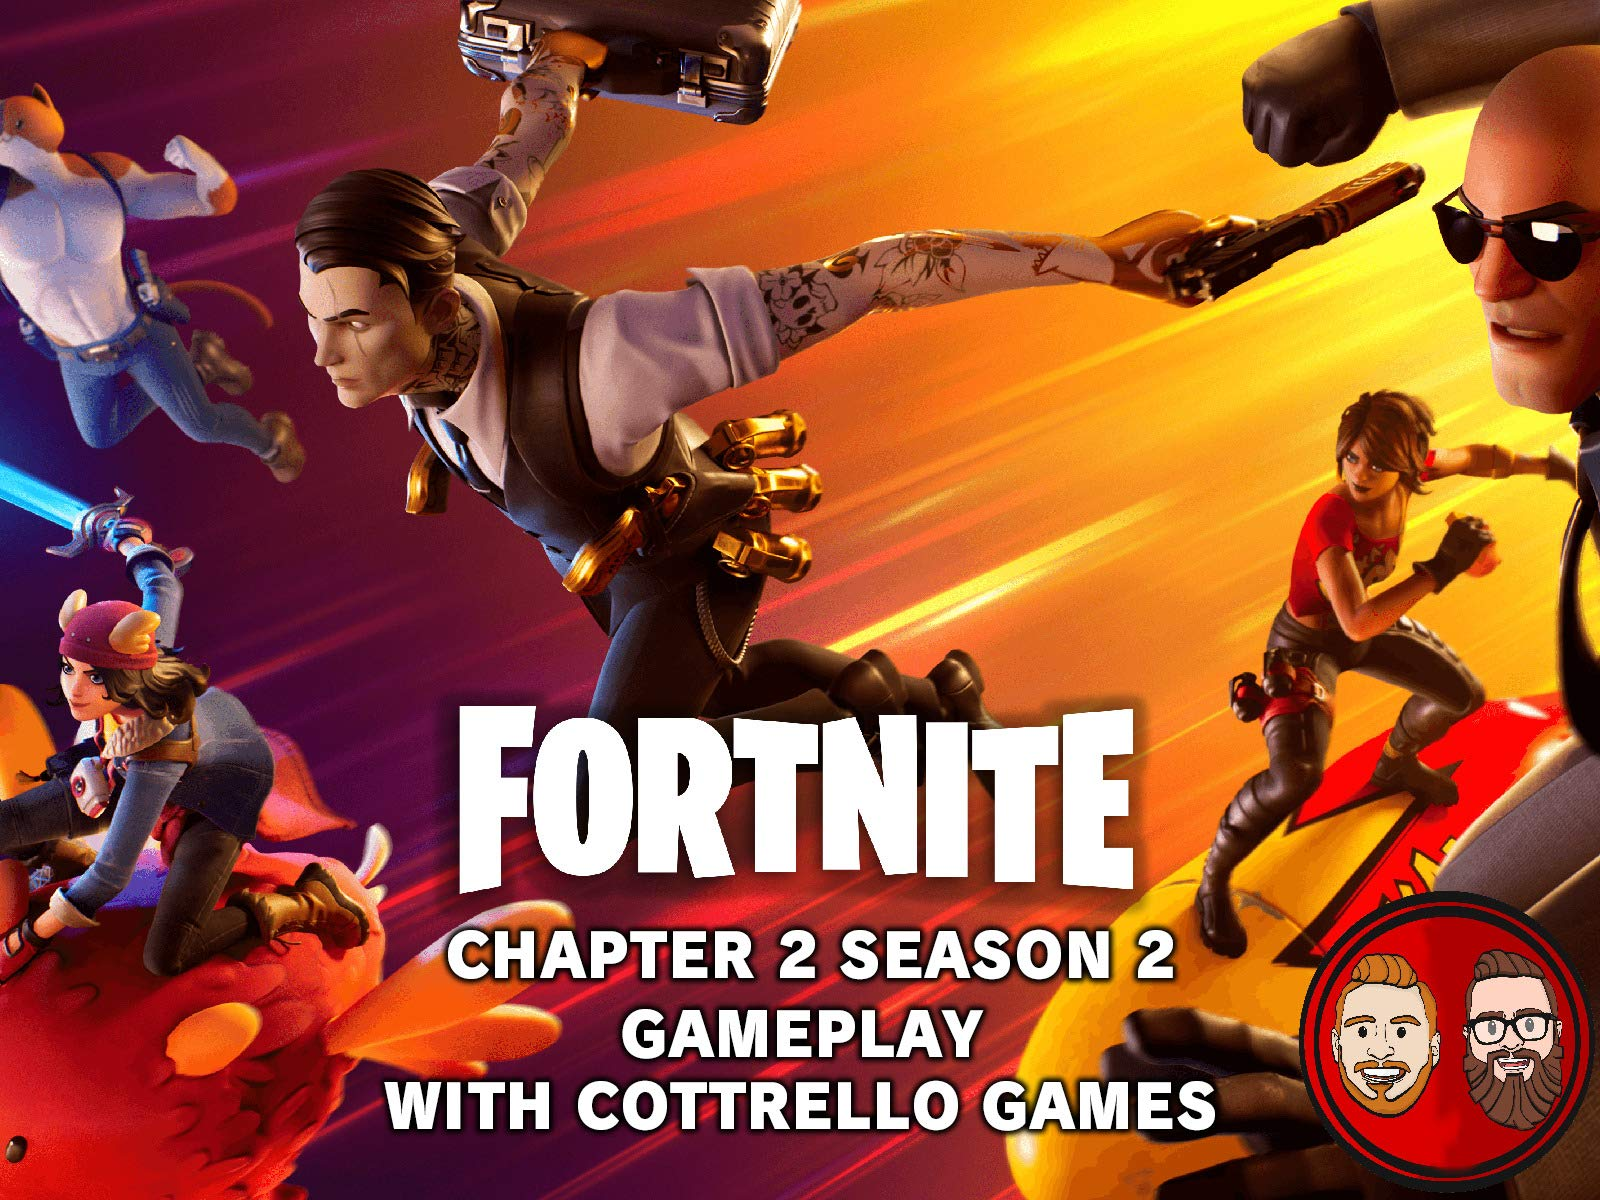 Fortnite Chapter 2 Season 2 Gameplay with Cottrello Games